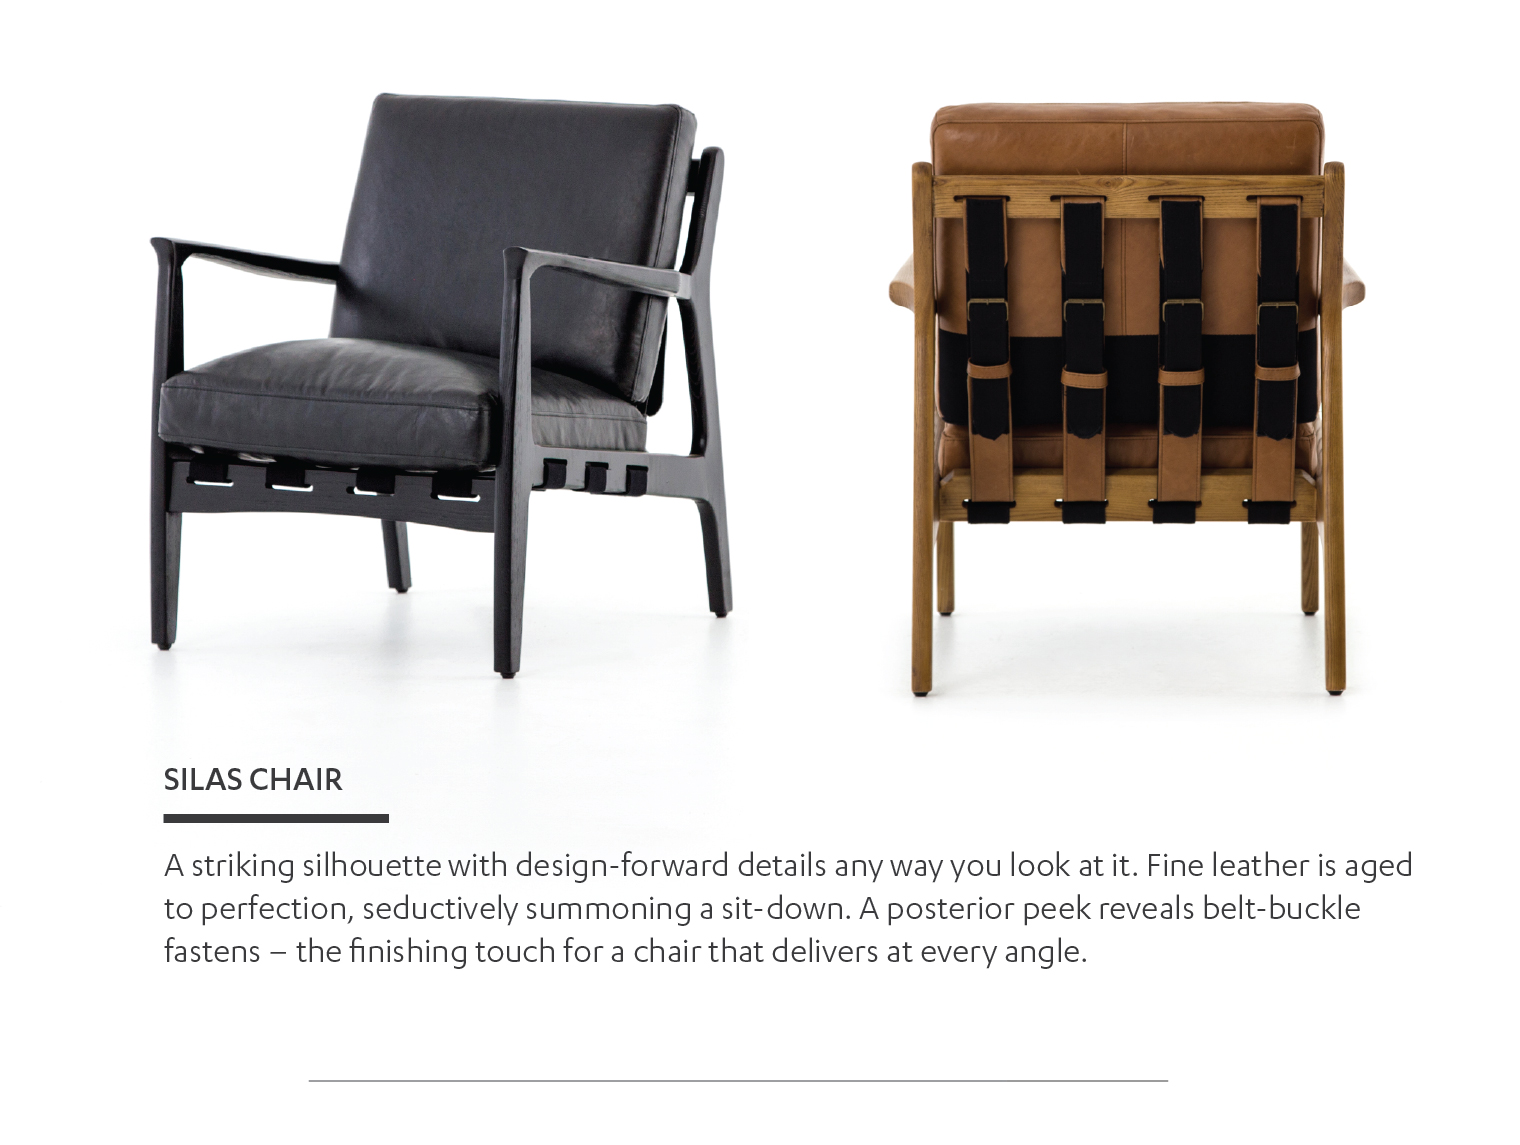 Mix In Rich Leather Cool Linen Or A Lounge Inducing Incline And Suddenly The Traditional Definition Of Chair Takes On Vastly New Meaning